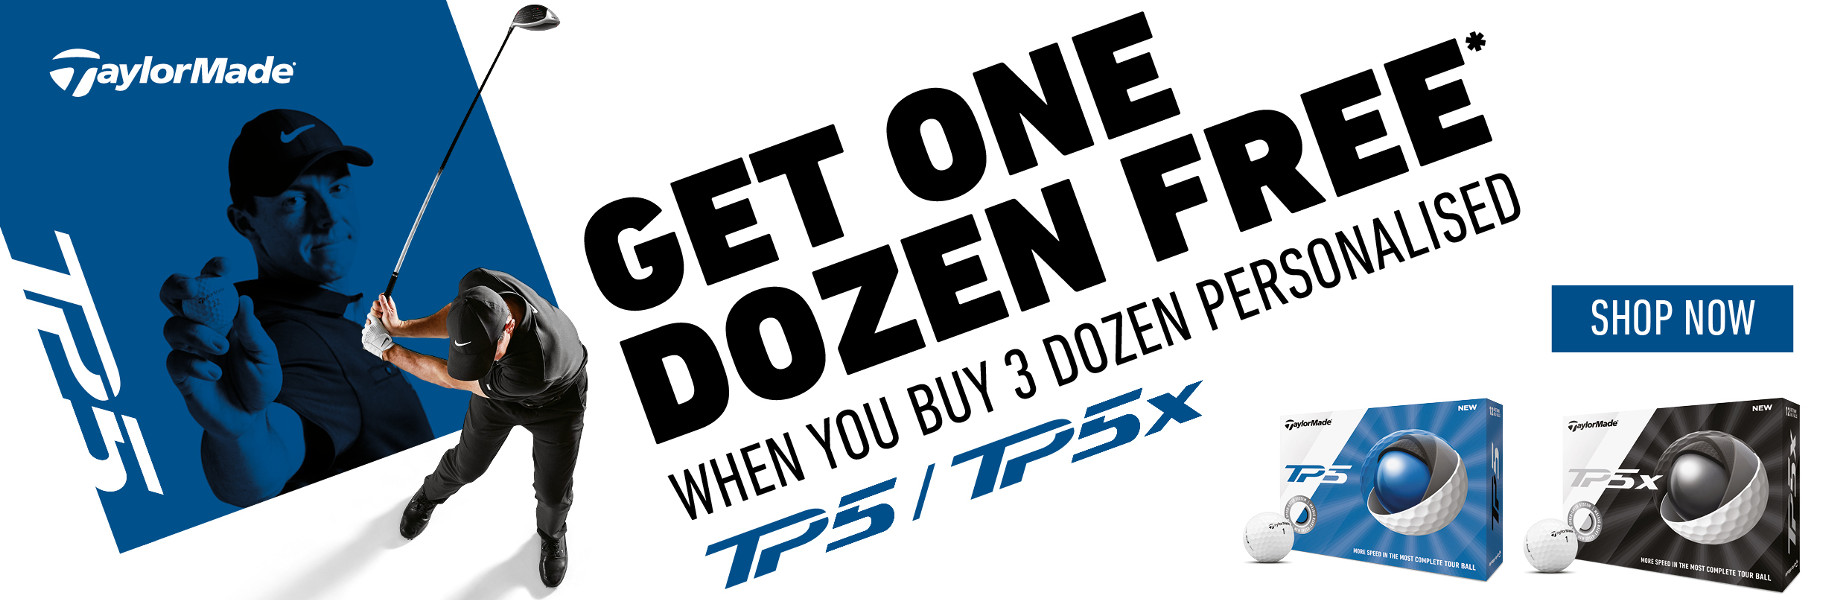 TaylorMade Loyalty Rewarded - FREE DOZEN with this 3 Dozen of Personalised Balls